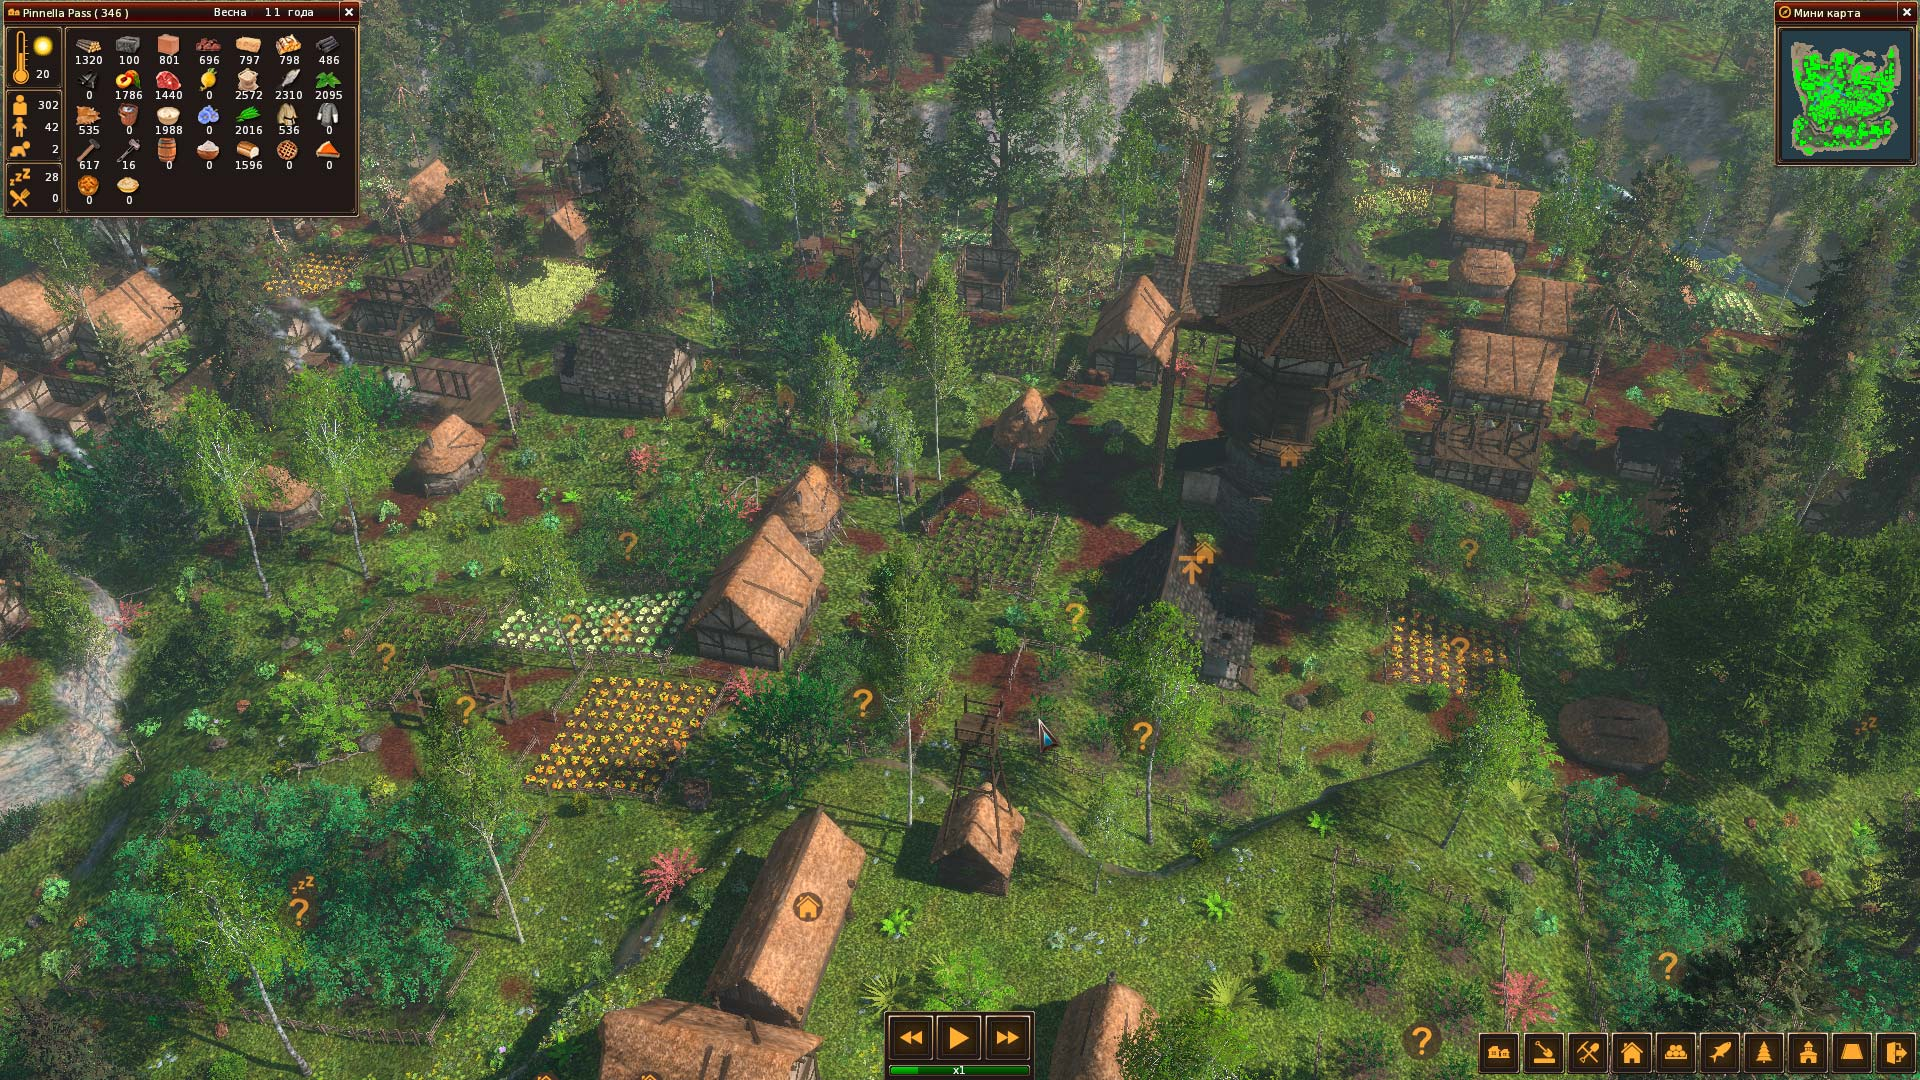 Life is feudal forest village похожие life is feudal your own как играть оффлайн